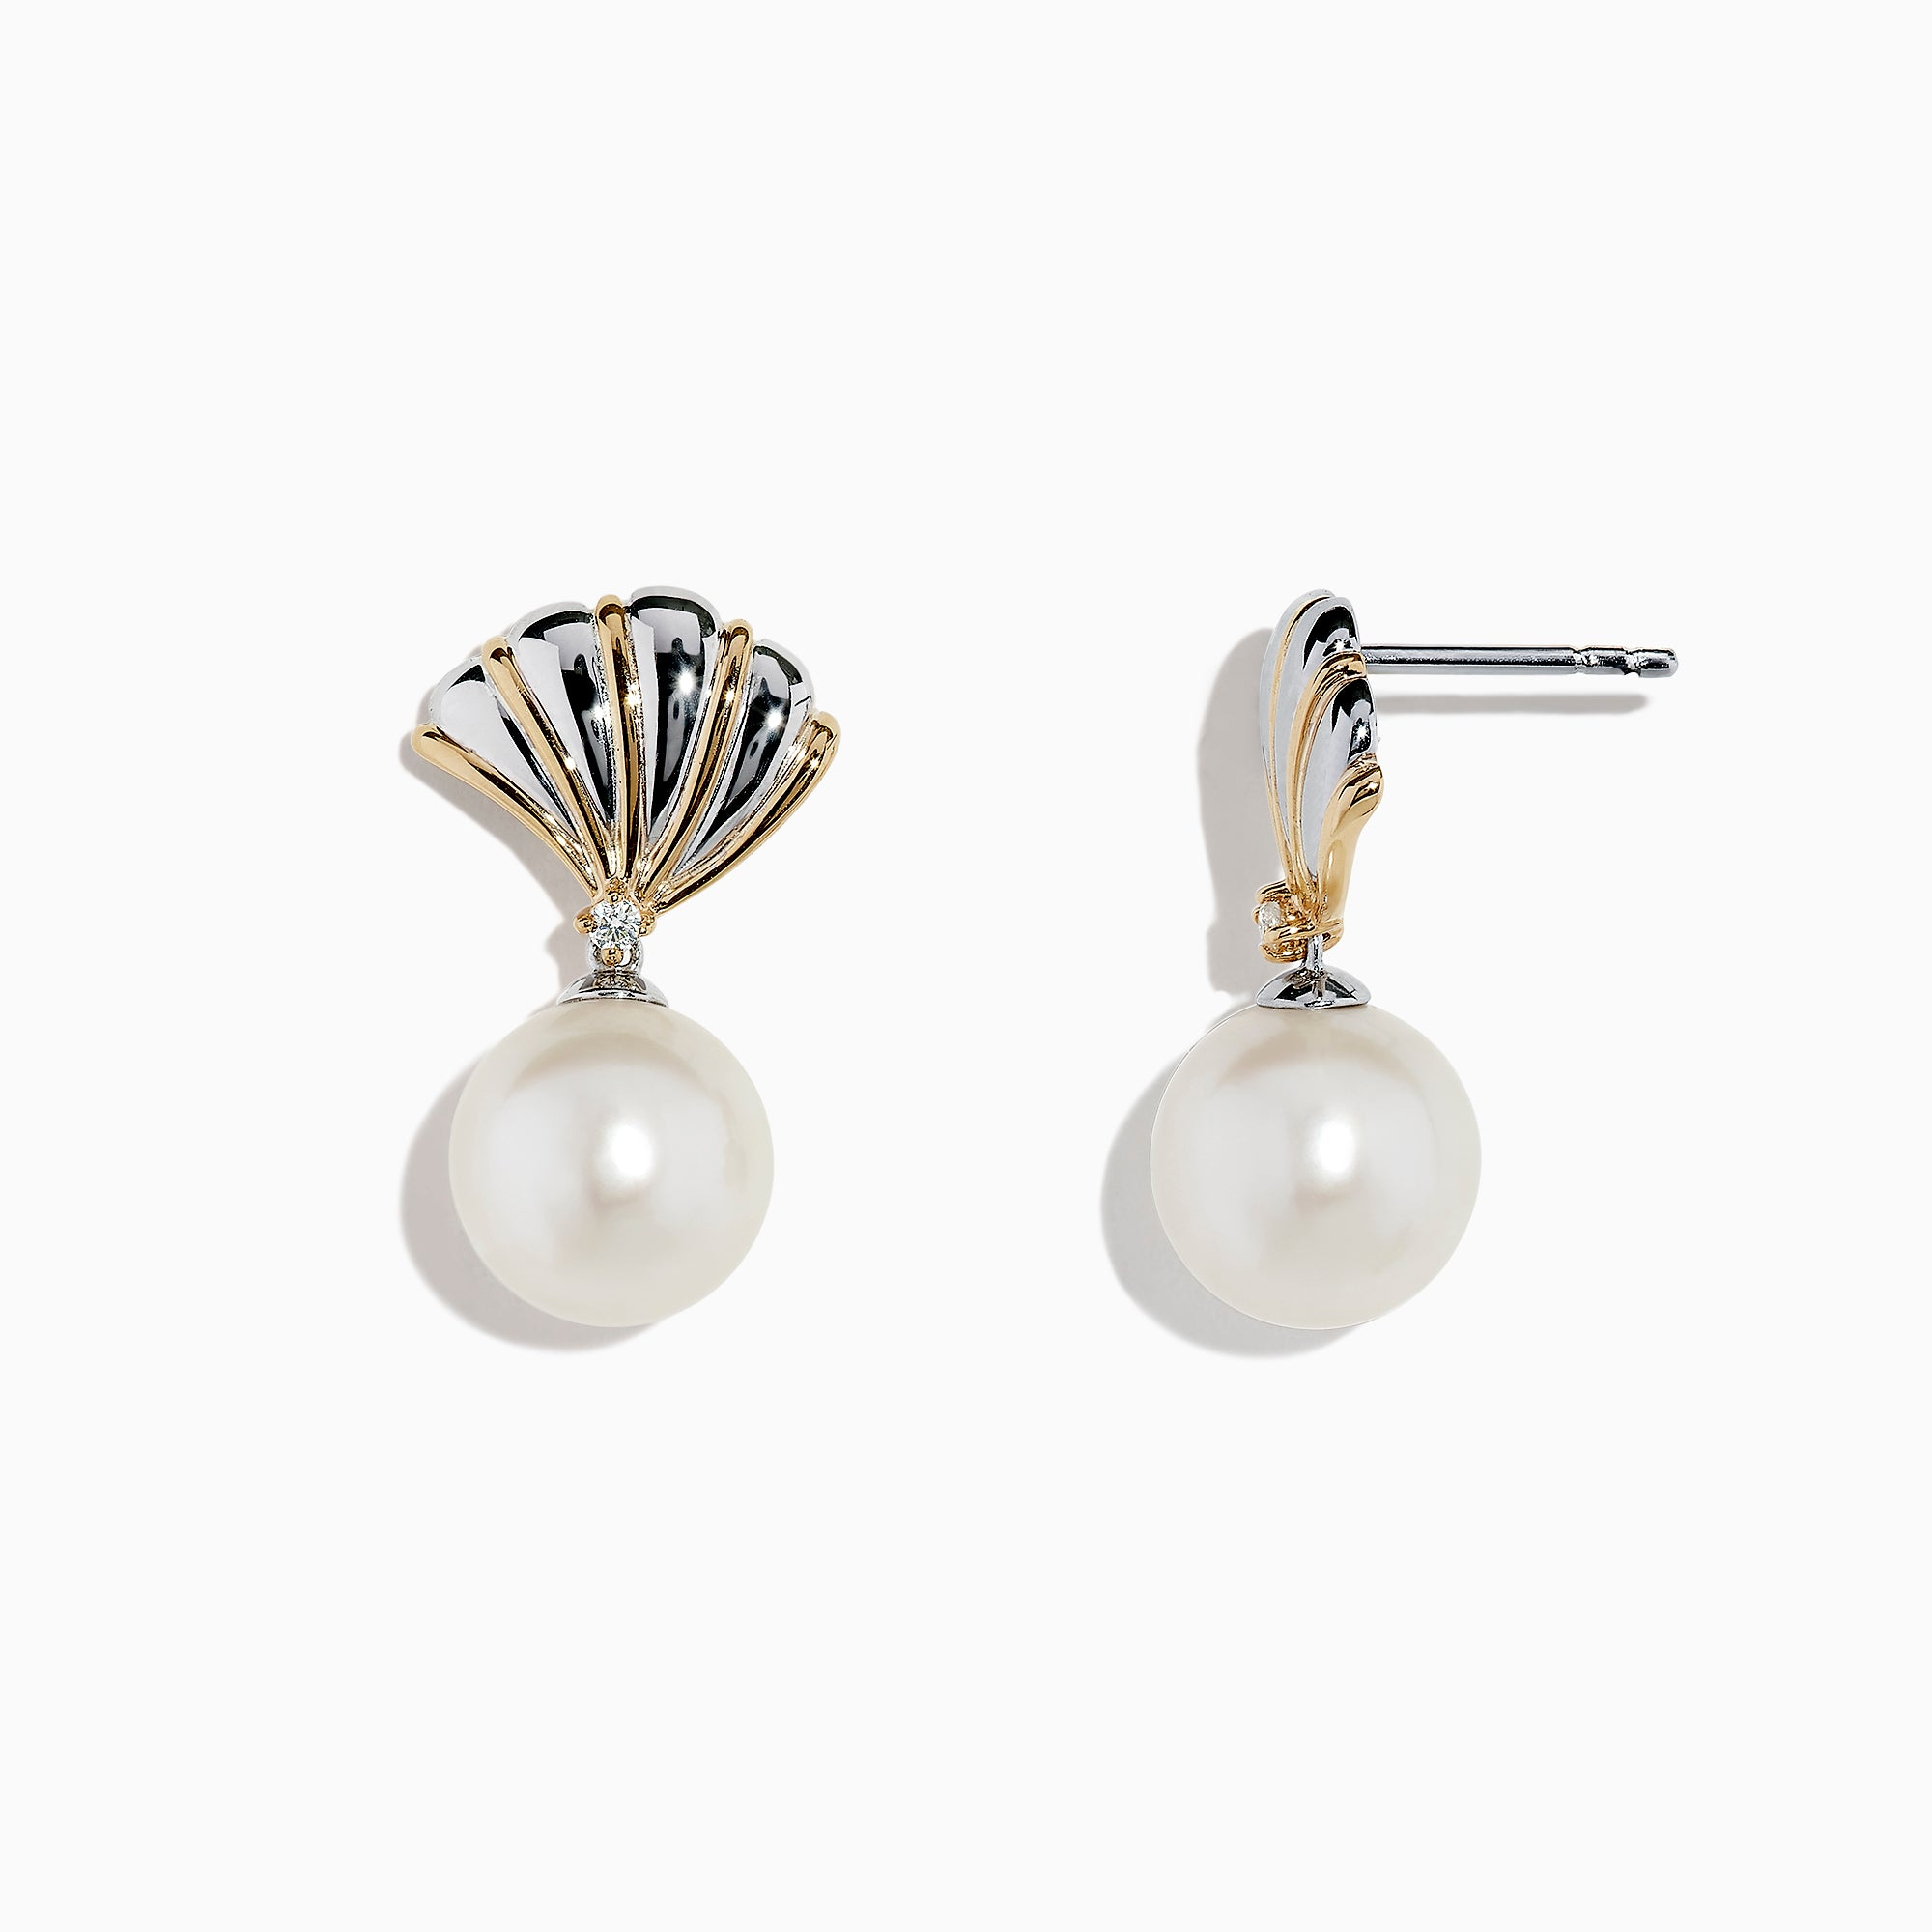 Effy Sterling Silver & 14K Gold Pearl and Diamond Shell Earrings, 0.04 TCW